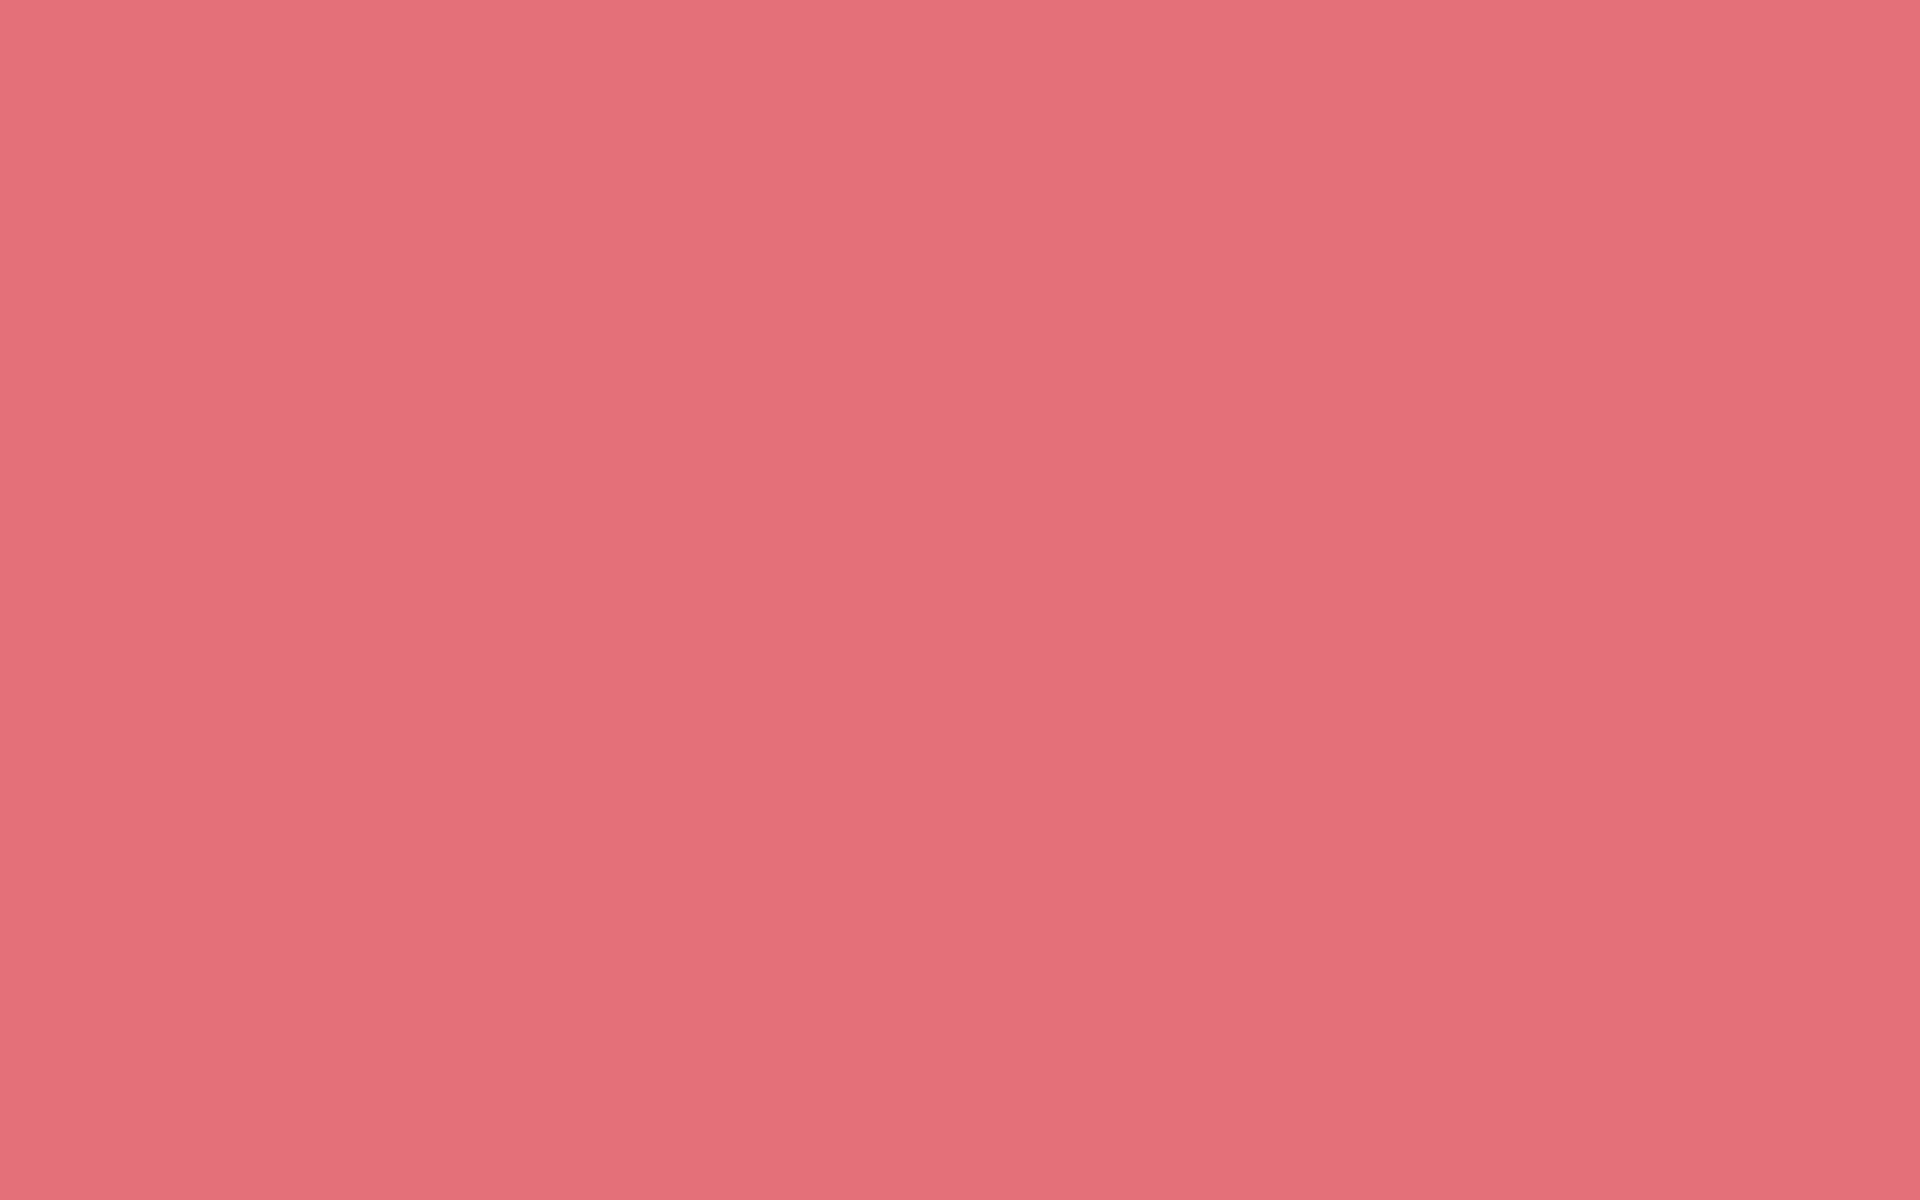 1920x1200 Candy Pink Solid Color Background